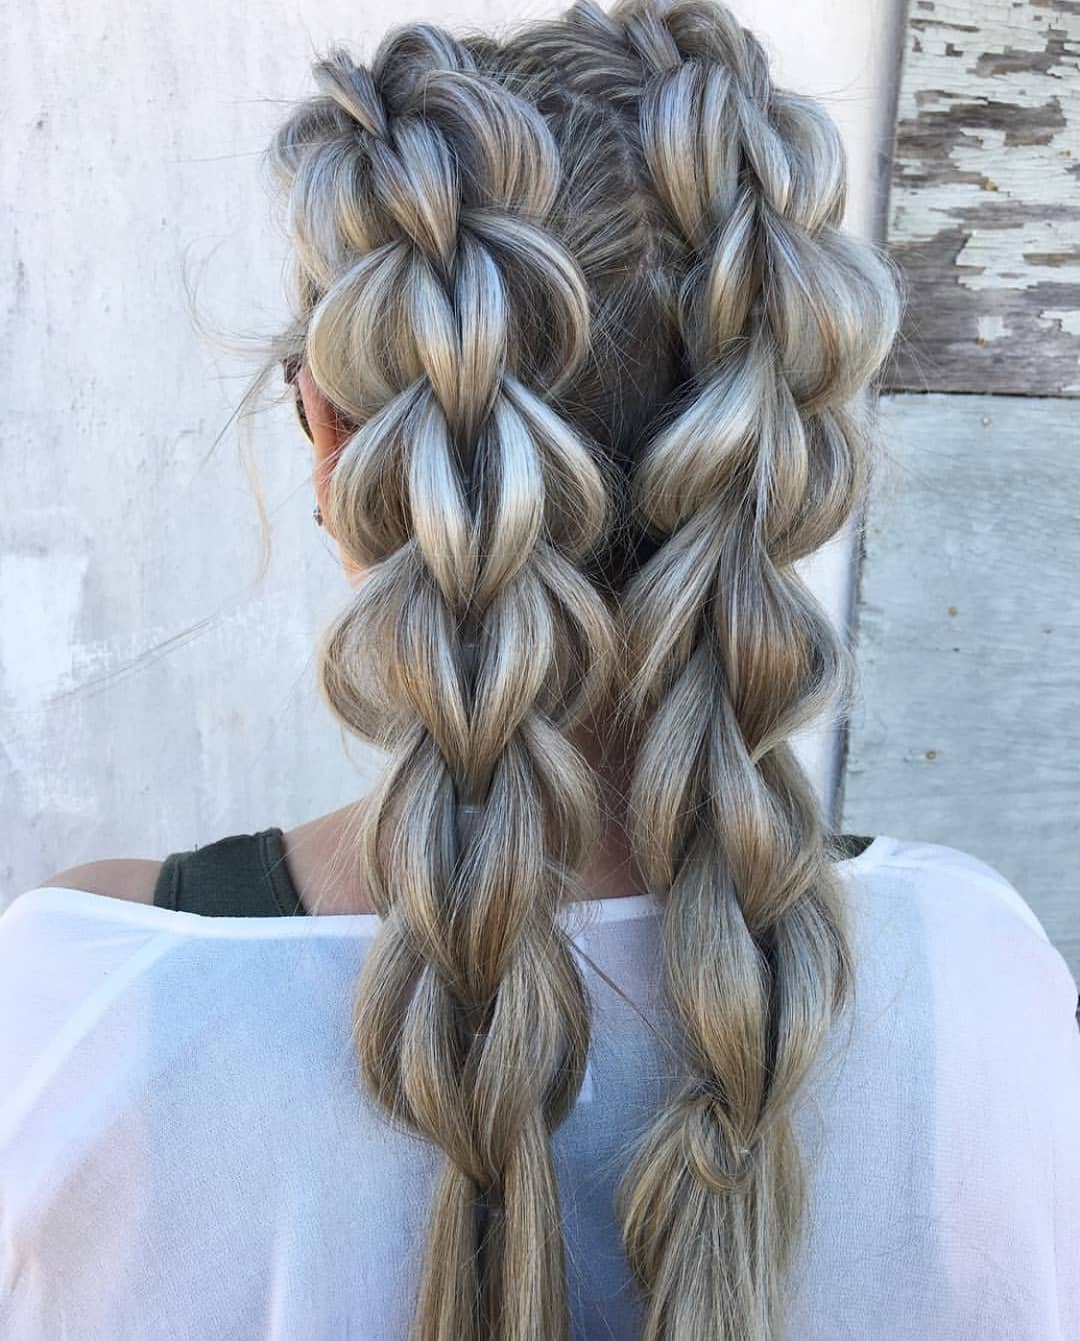 Amazing Wedding Hairstyles: 10 Amazing Braided Hairstyles For Long Hair